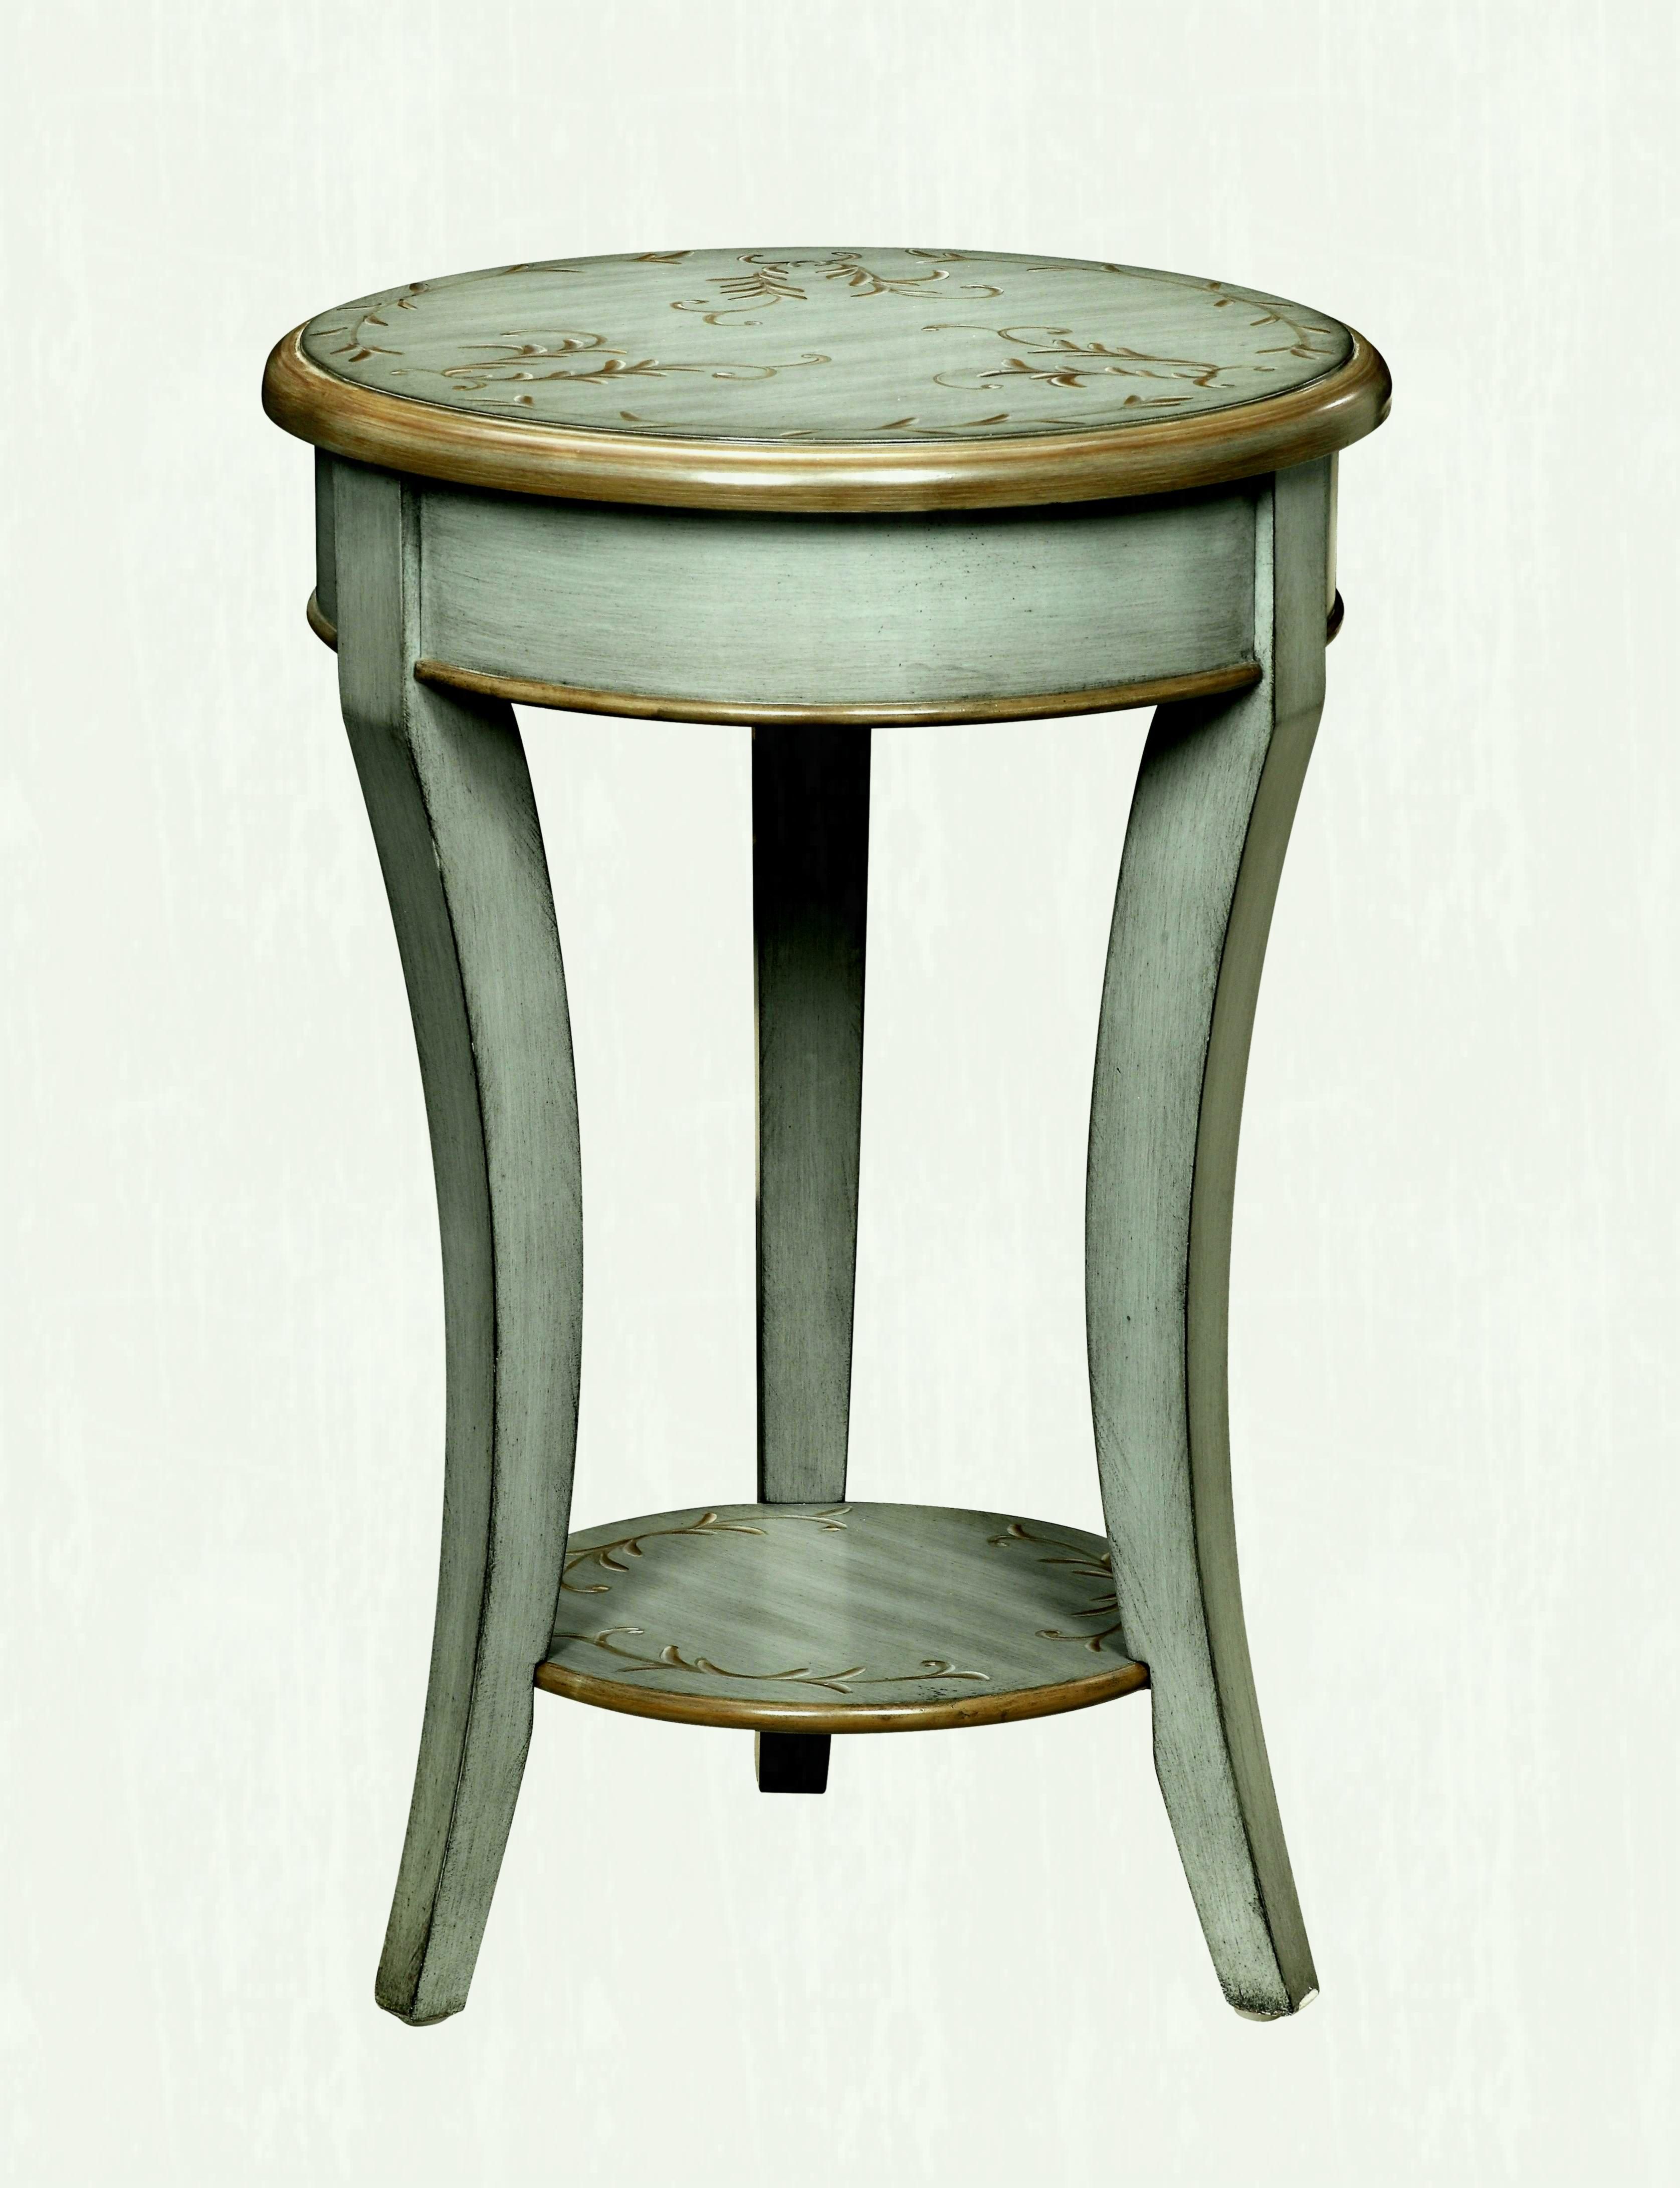 small round accent table for the bedroom lovely wood tablecloth high top universal furniture broadmoore drop leaf mahogany end antique hammered metal coffee sears tiffany style